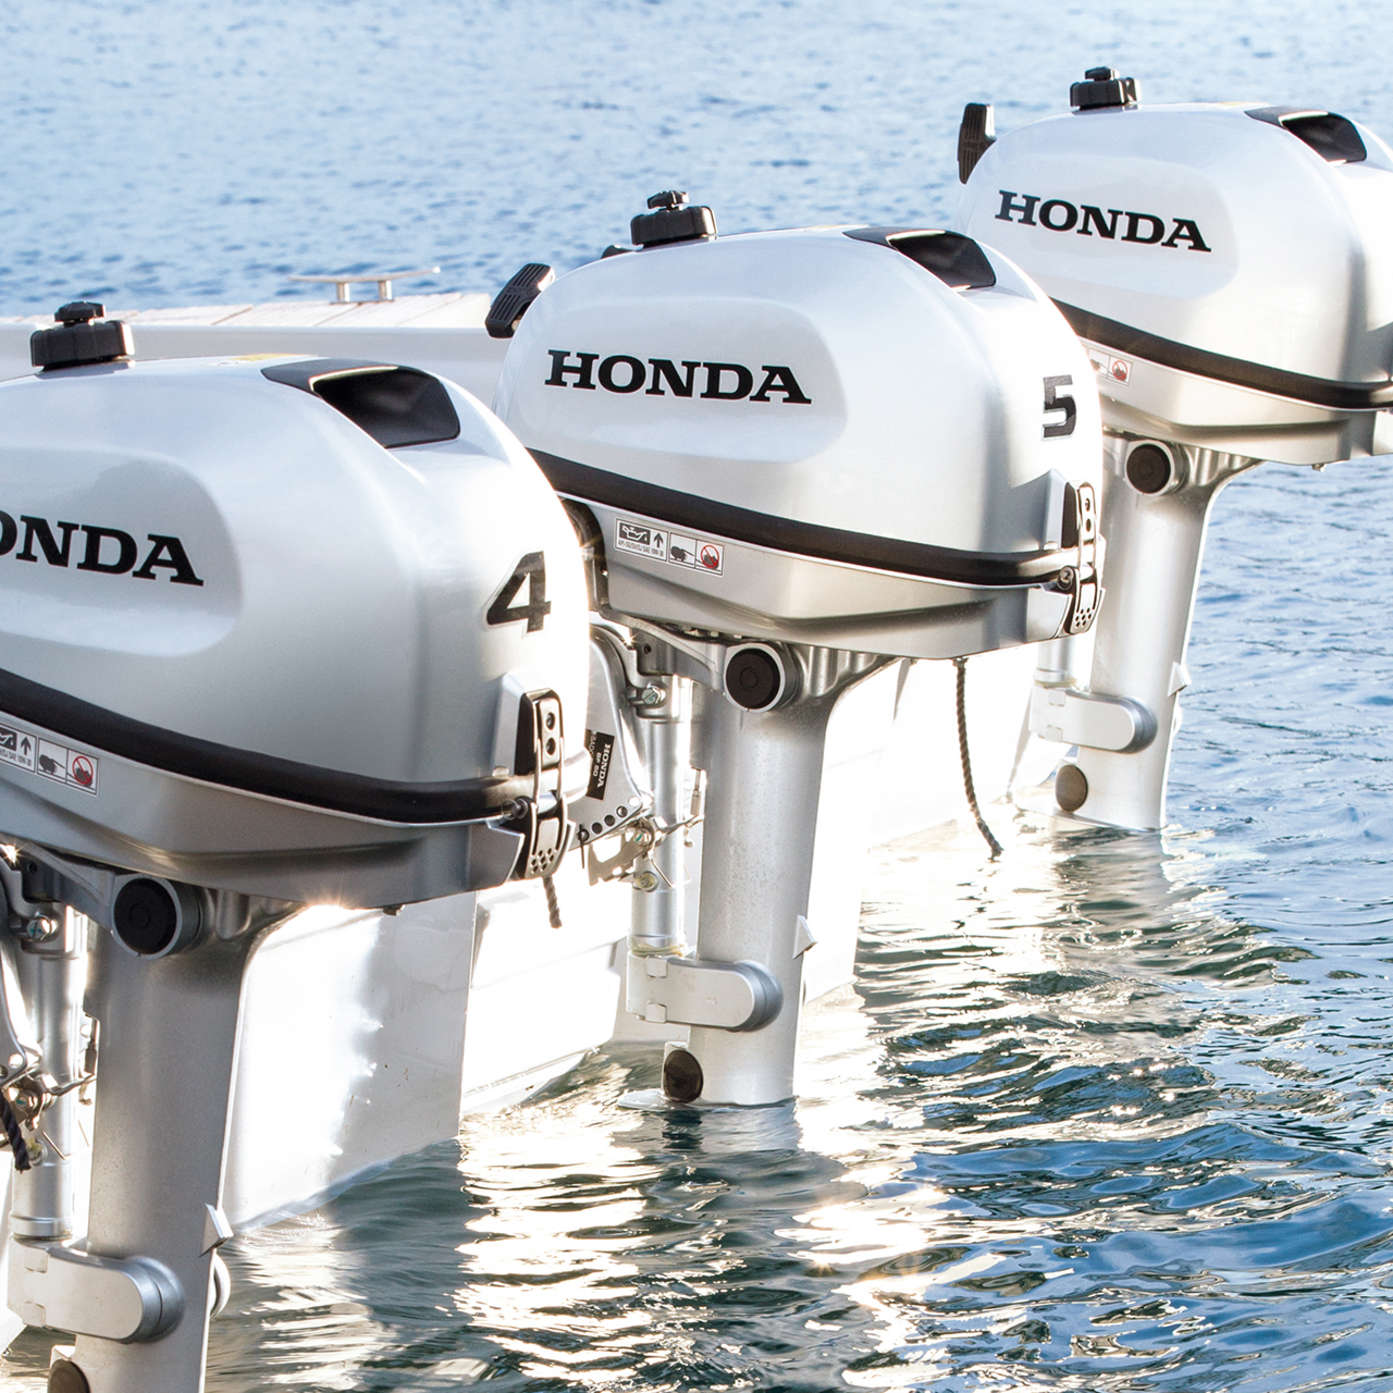 honda product outboard schu shaft pacermarine motors short model new